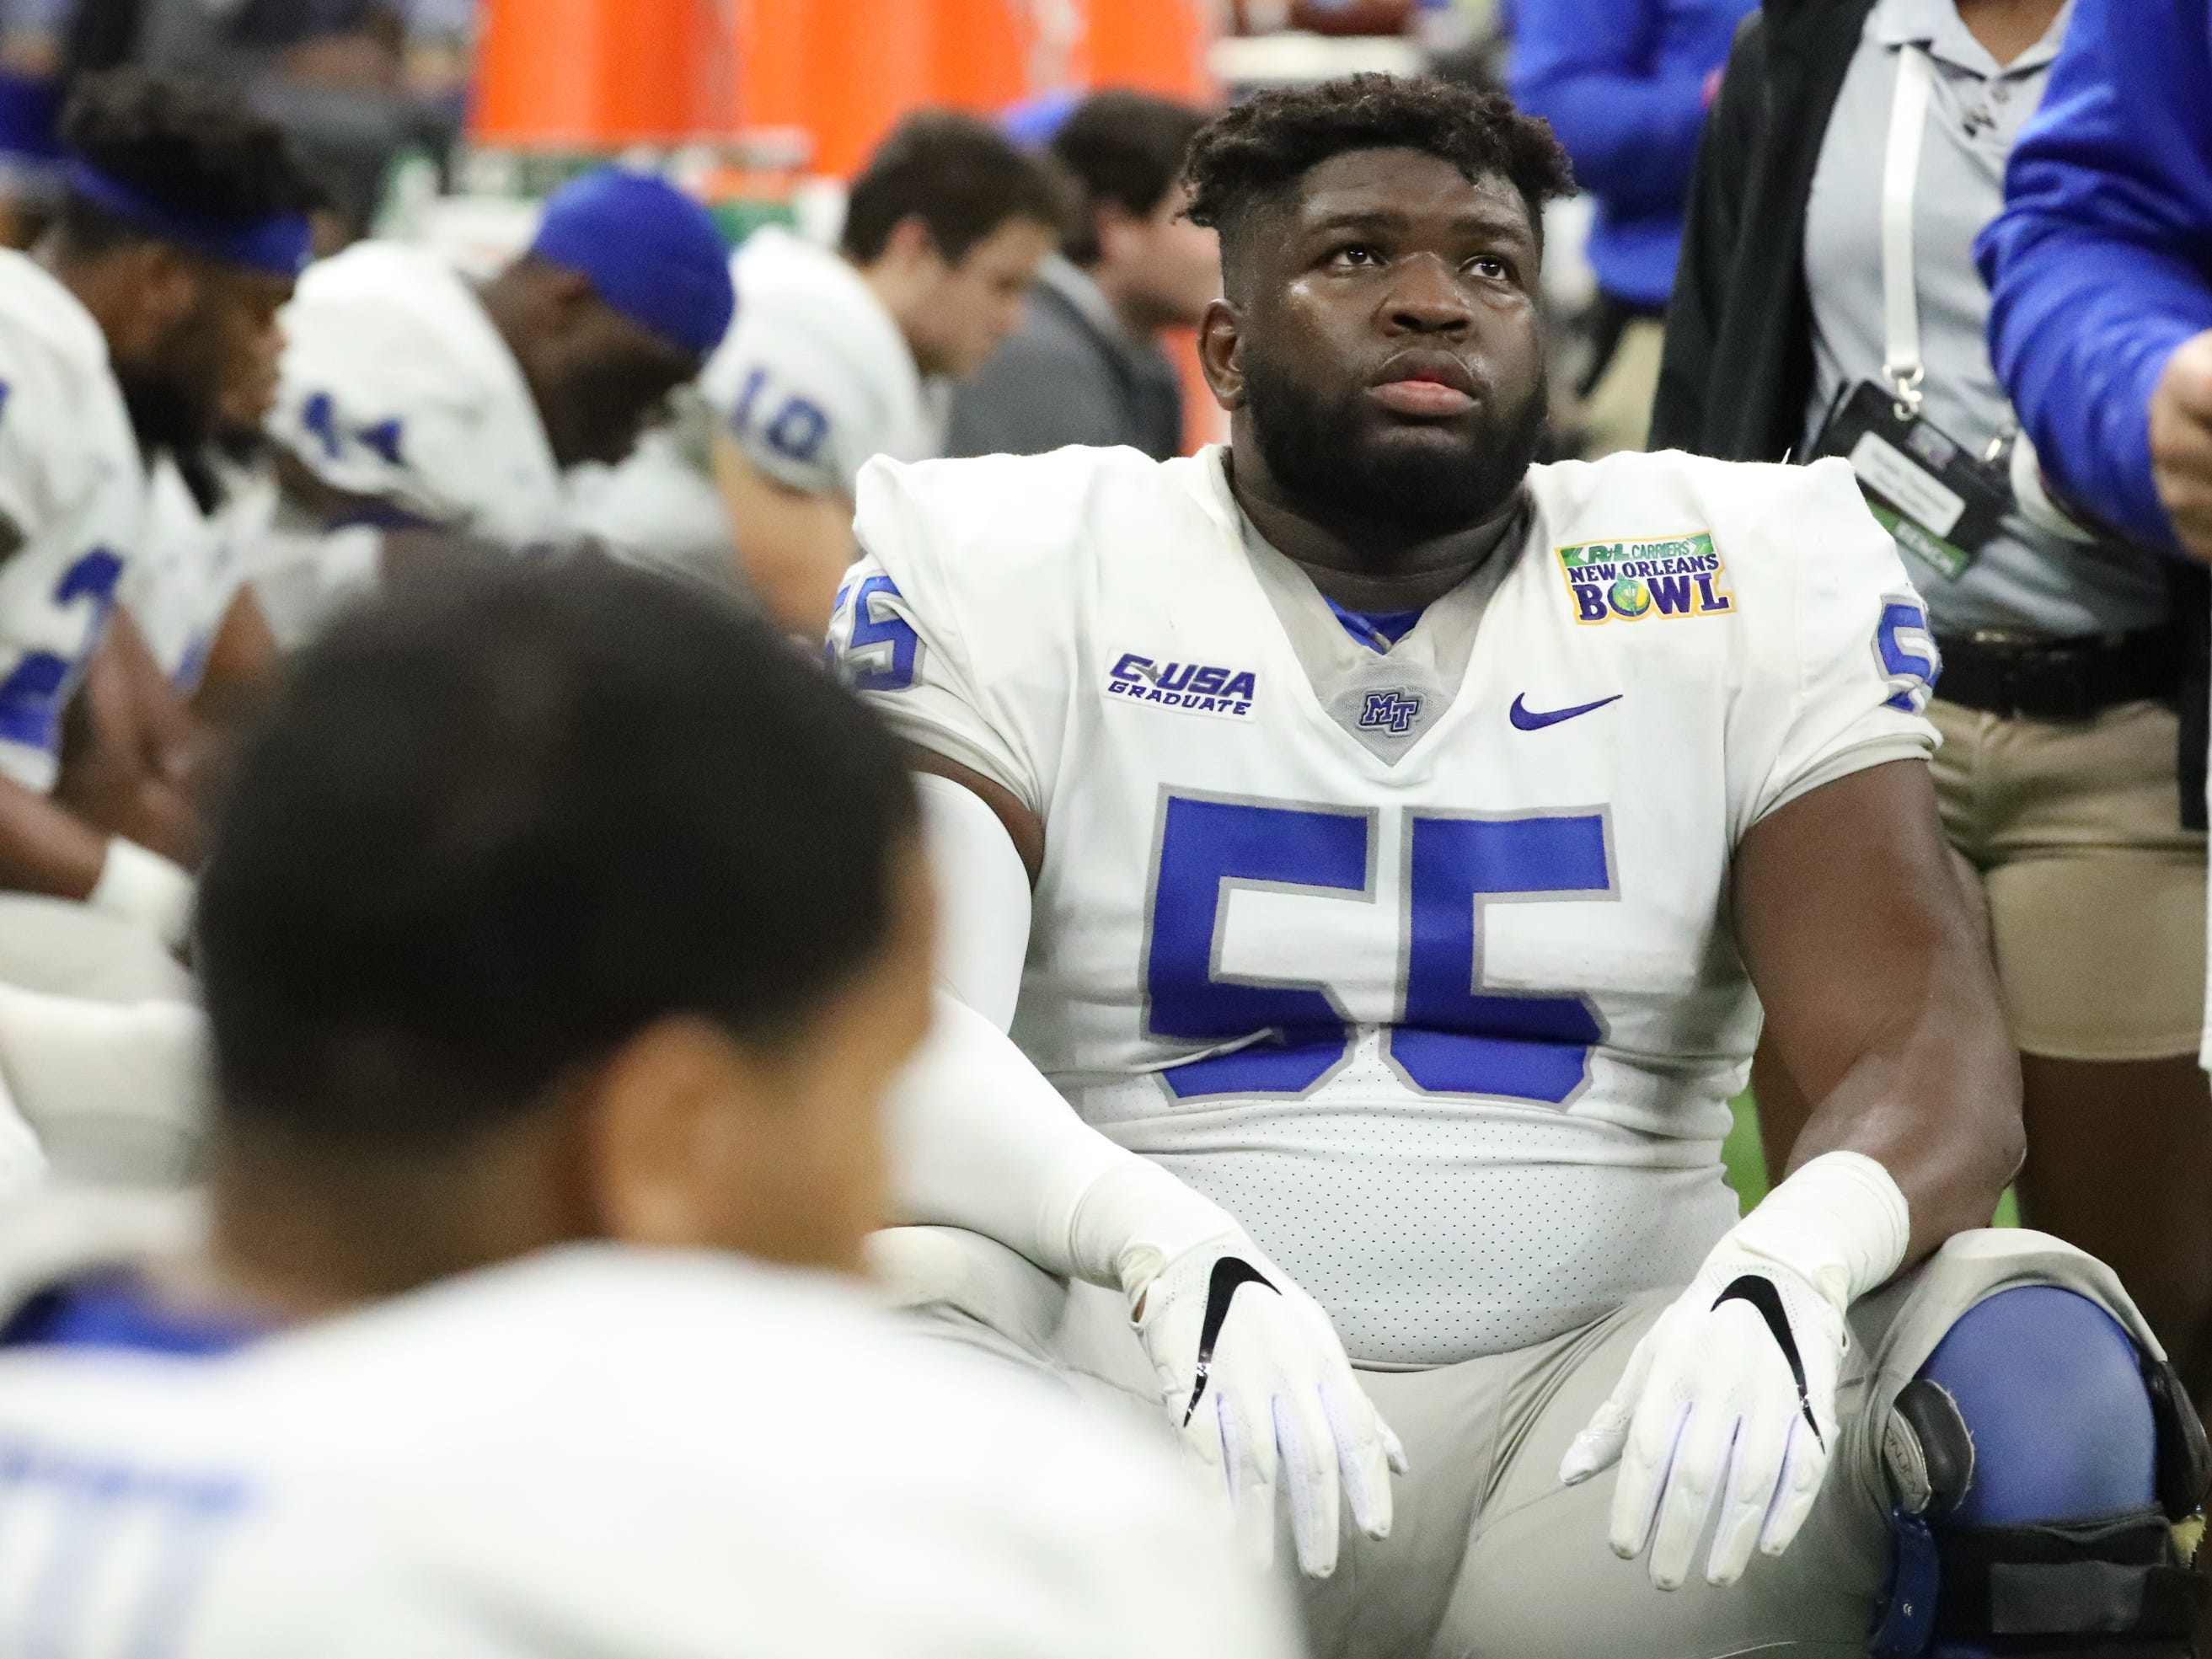 Middle Tennessee Blue Raiders offensive lineman Carlos Johnson (55) looks up at the score while on the sidelines on as they lose to Appalachian State on Saturday, Dec. 15, 2018, during the New Orleans Bowl.